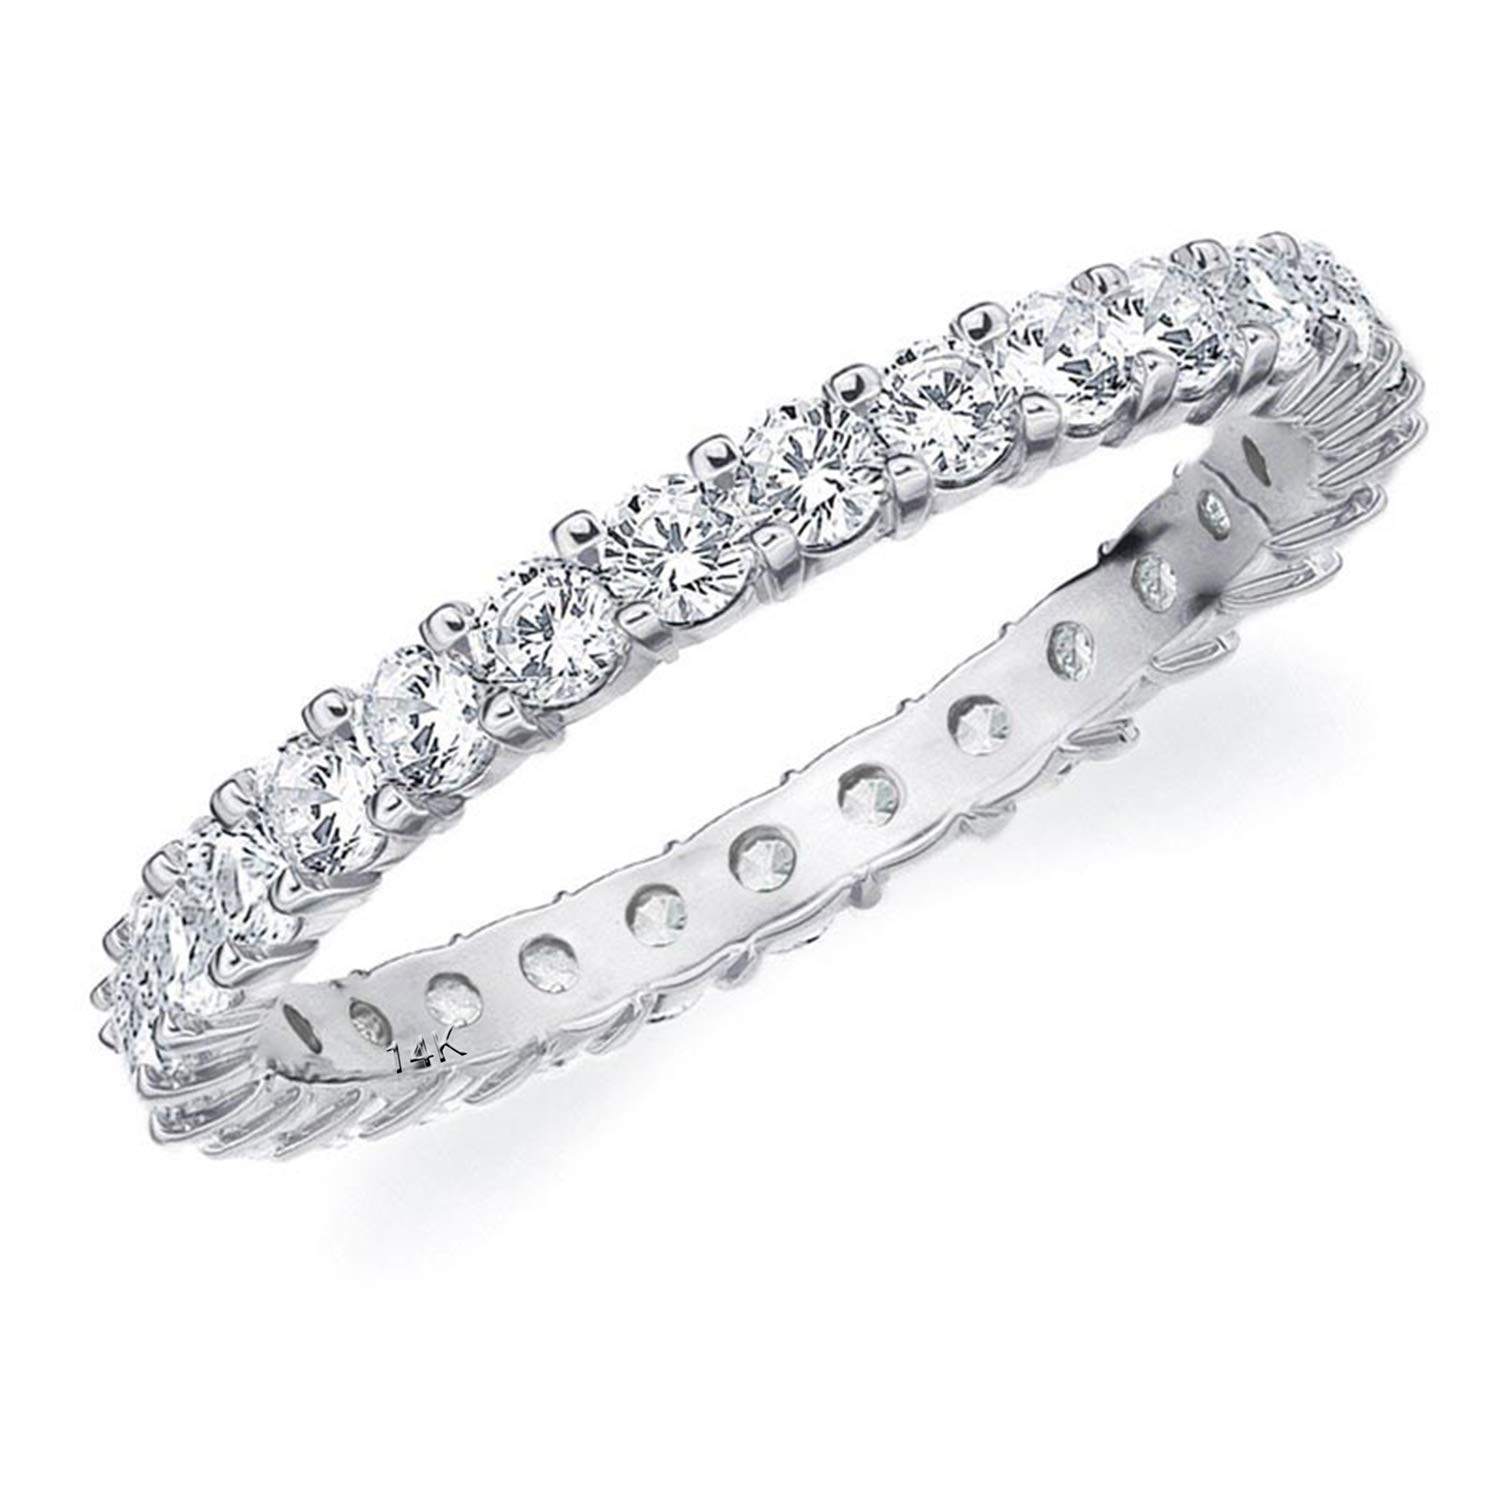 1CT Passion Eternity Diamond Ring in 14K White Gold Shared Prong Setting - Finger Size 6.75